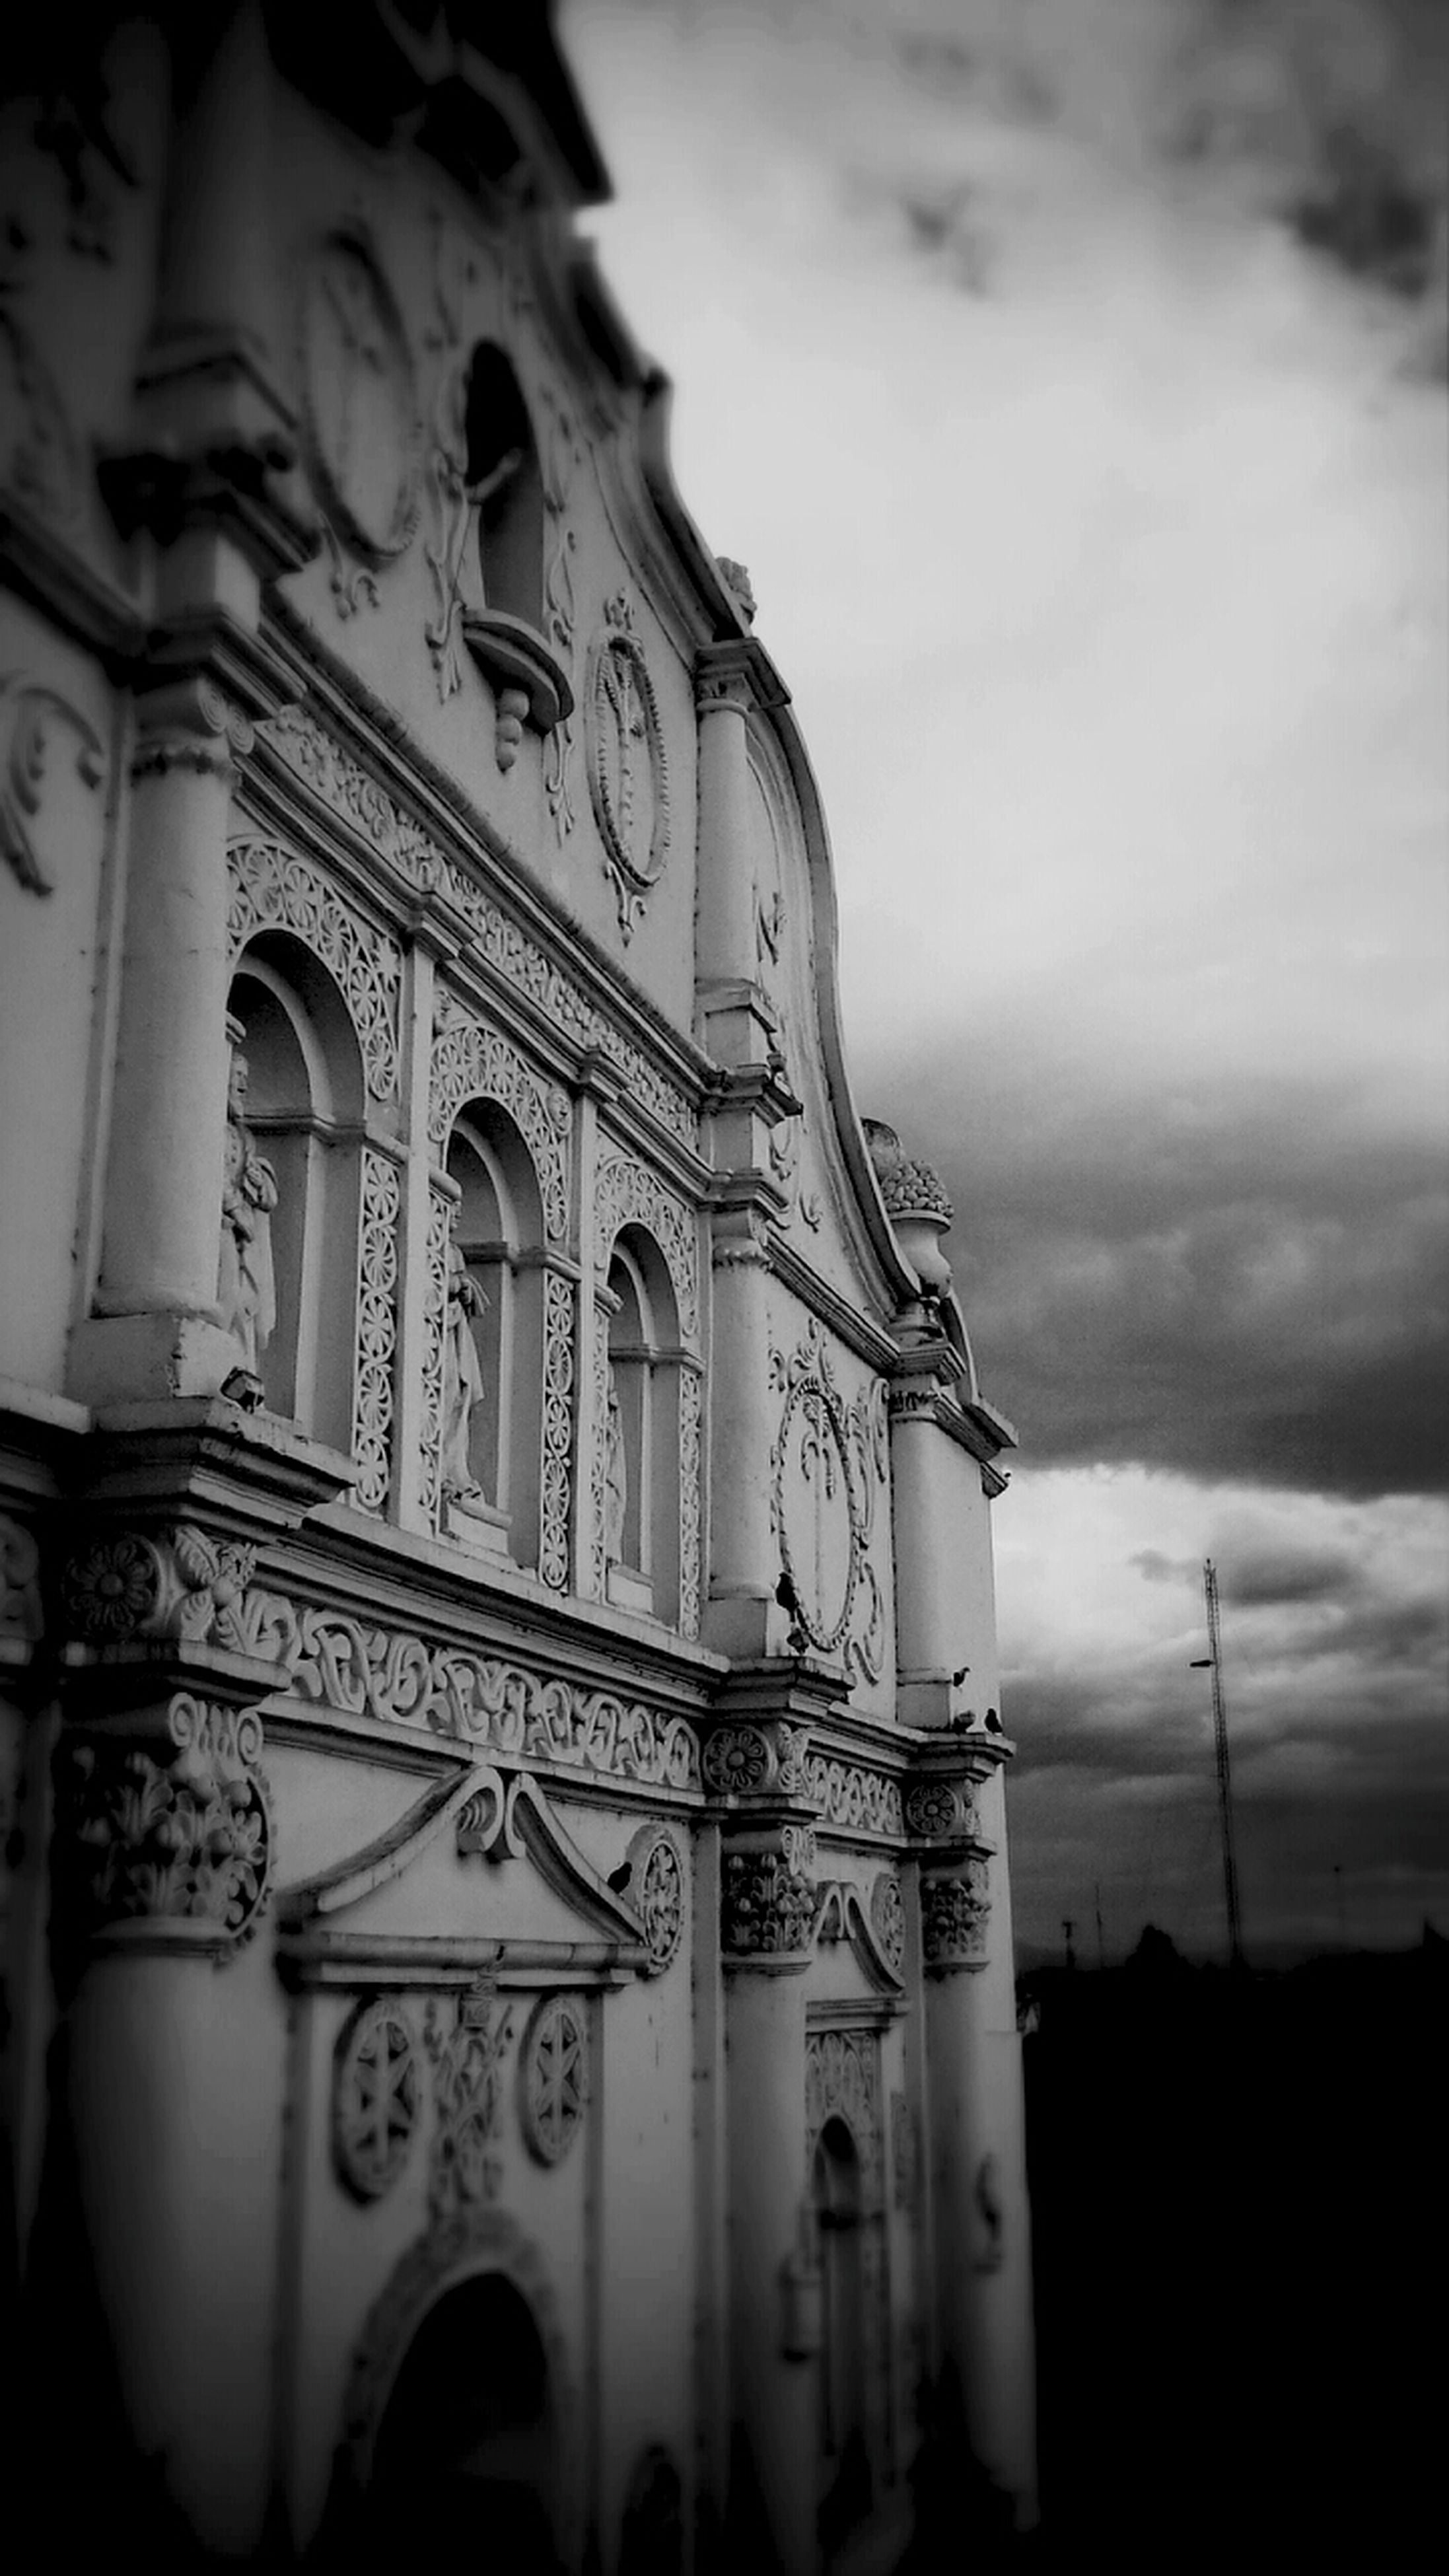 religion, spirituality, architecture, place of worship, built structure, low angle view, building exterior, history, sky, outdoors, cloud - sky, no people, travel destinations, sculpture, day